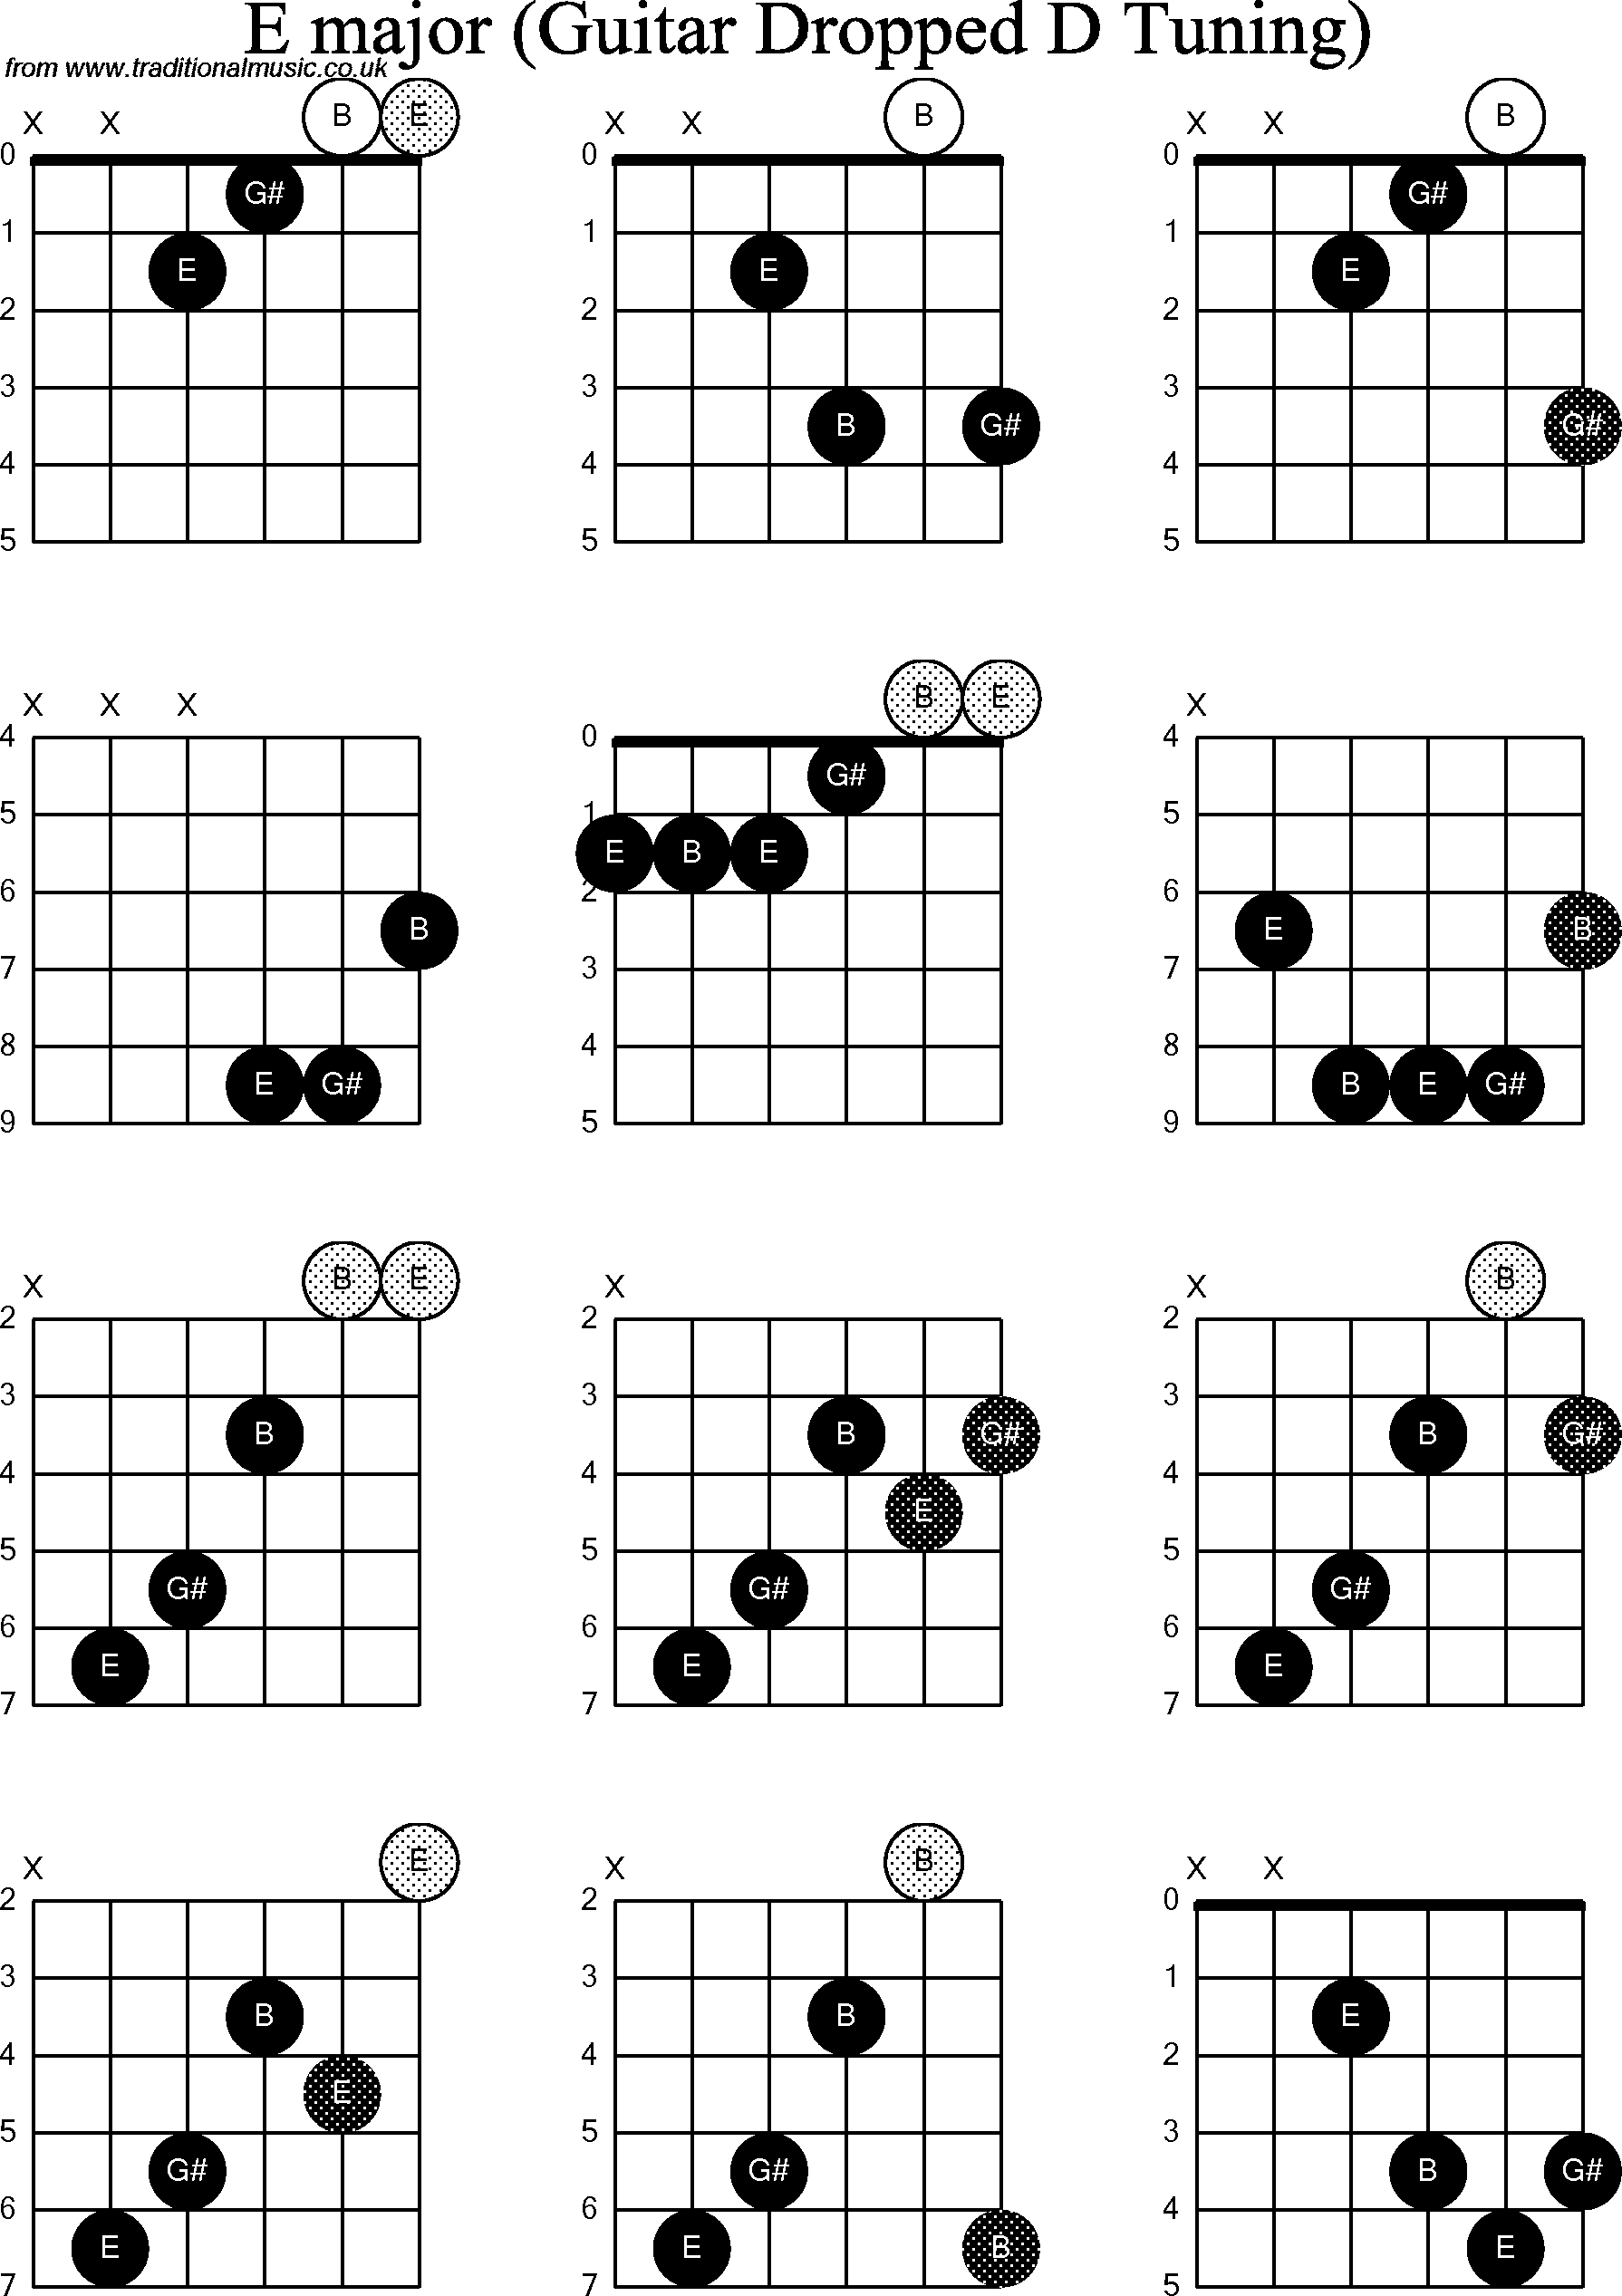 Chord Diagrams For Dropped D Guitardadgbe E